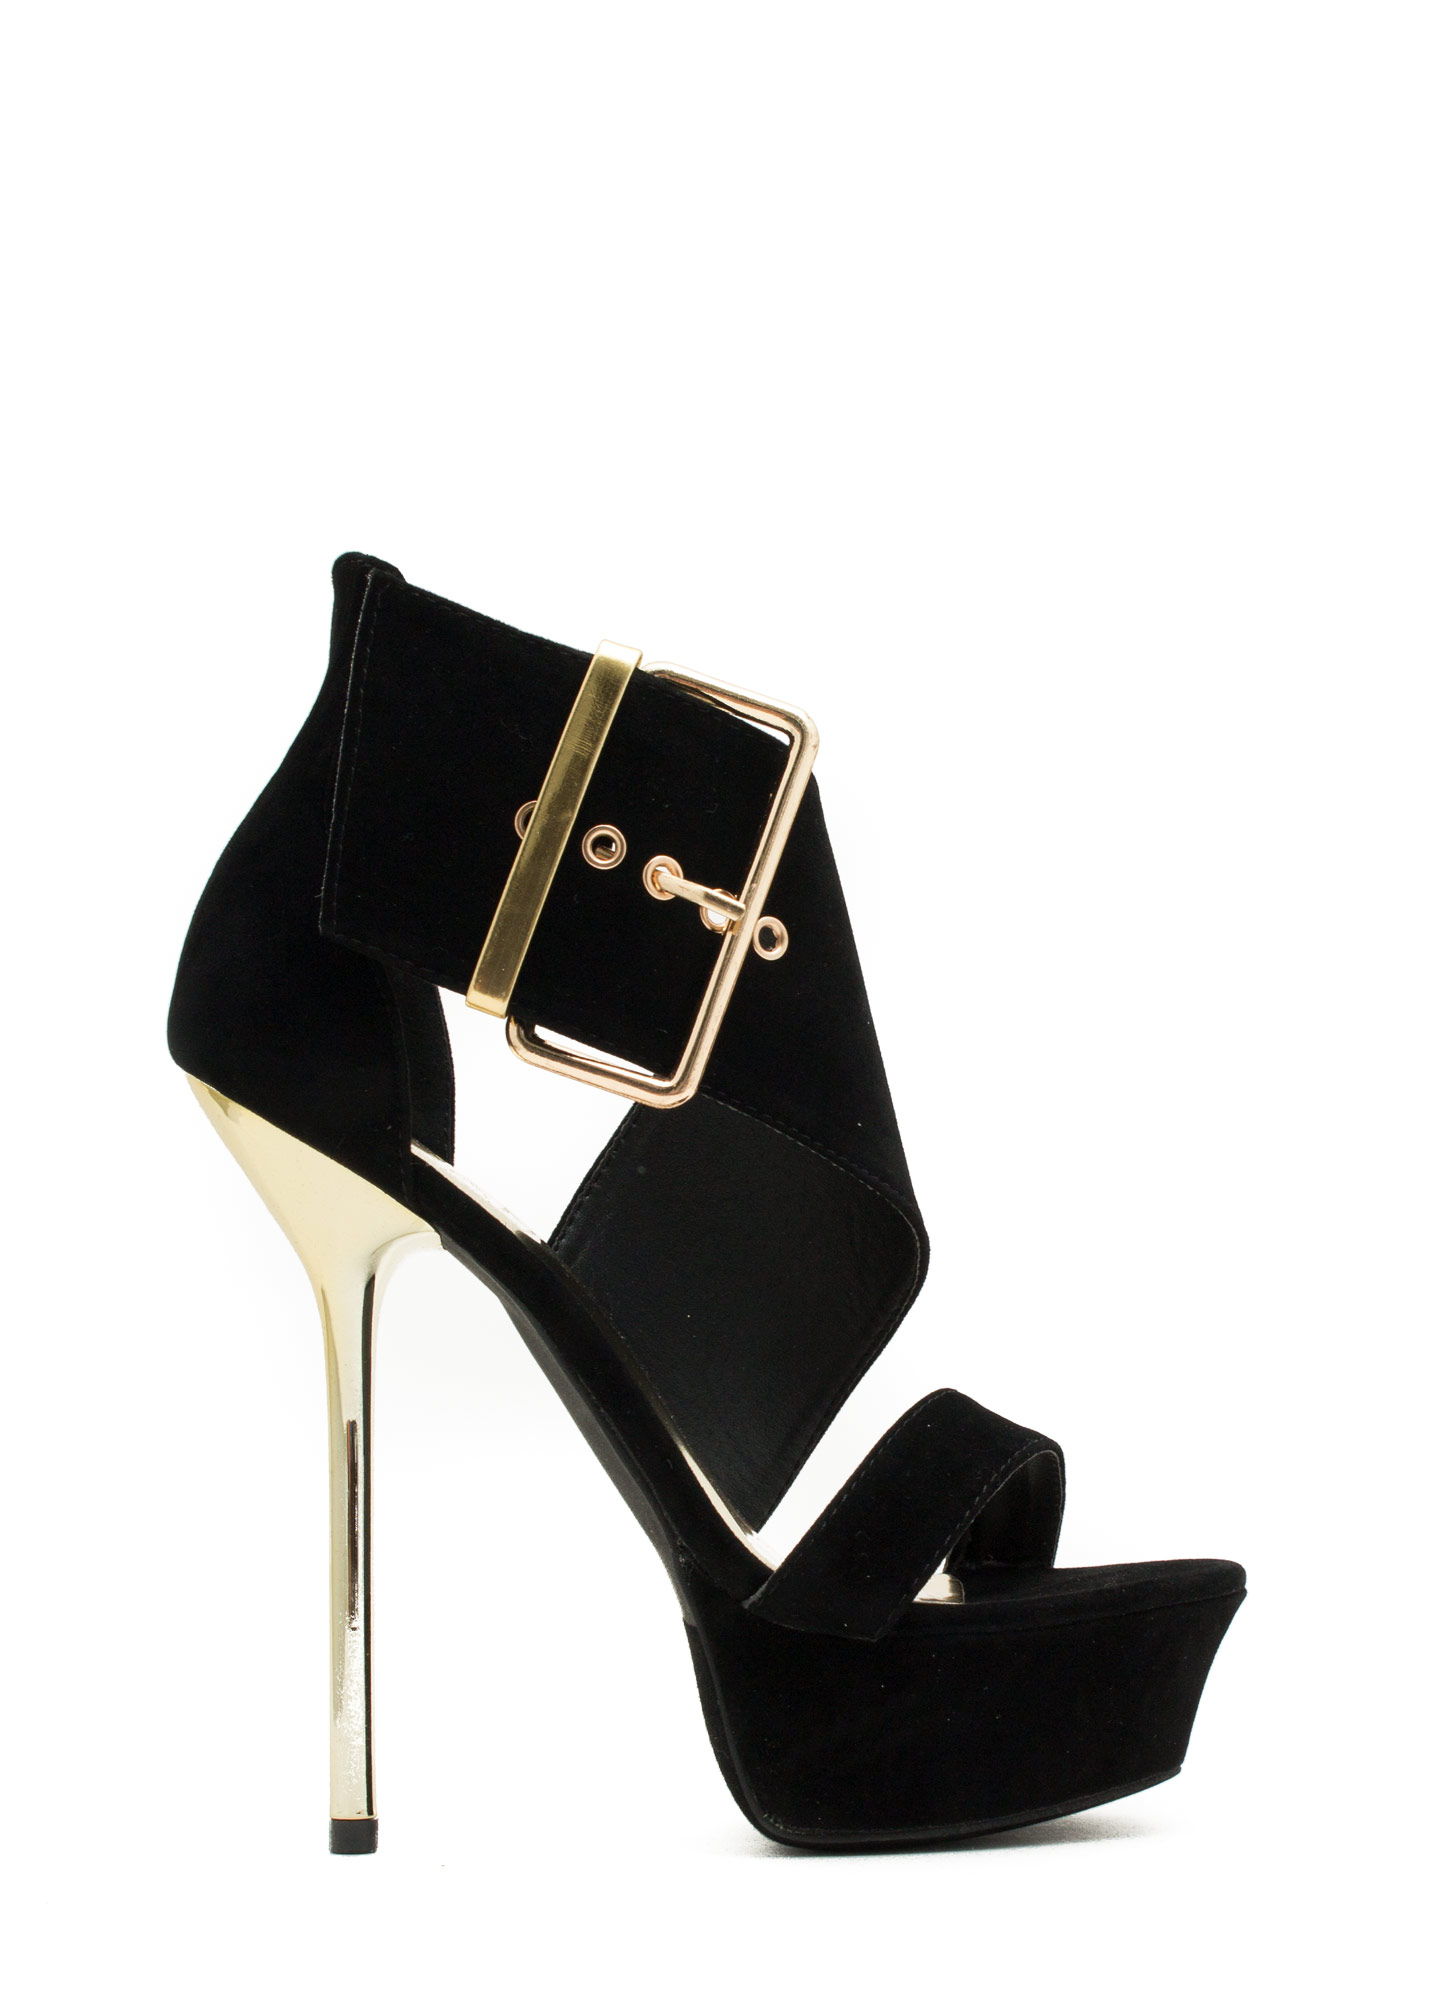 It's A Wrap Big Buckle Platform Heels BLACK